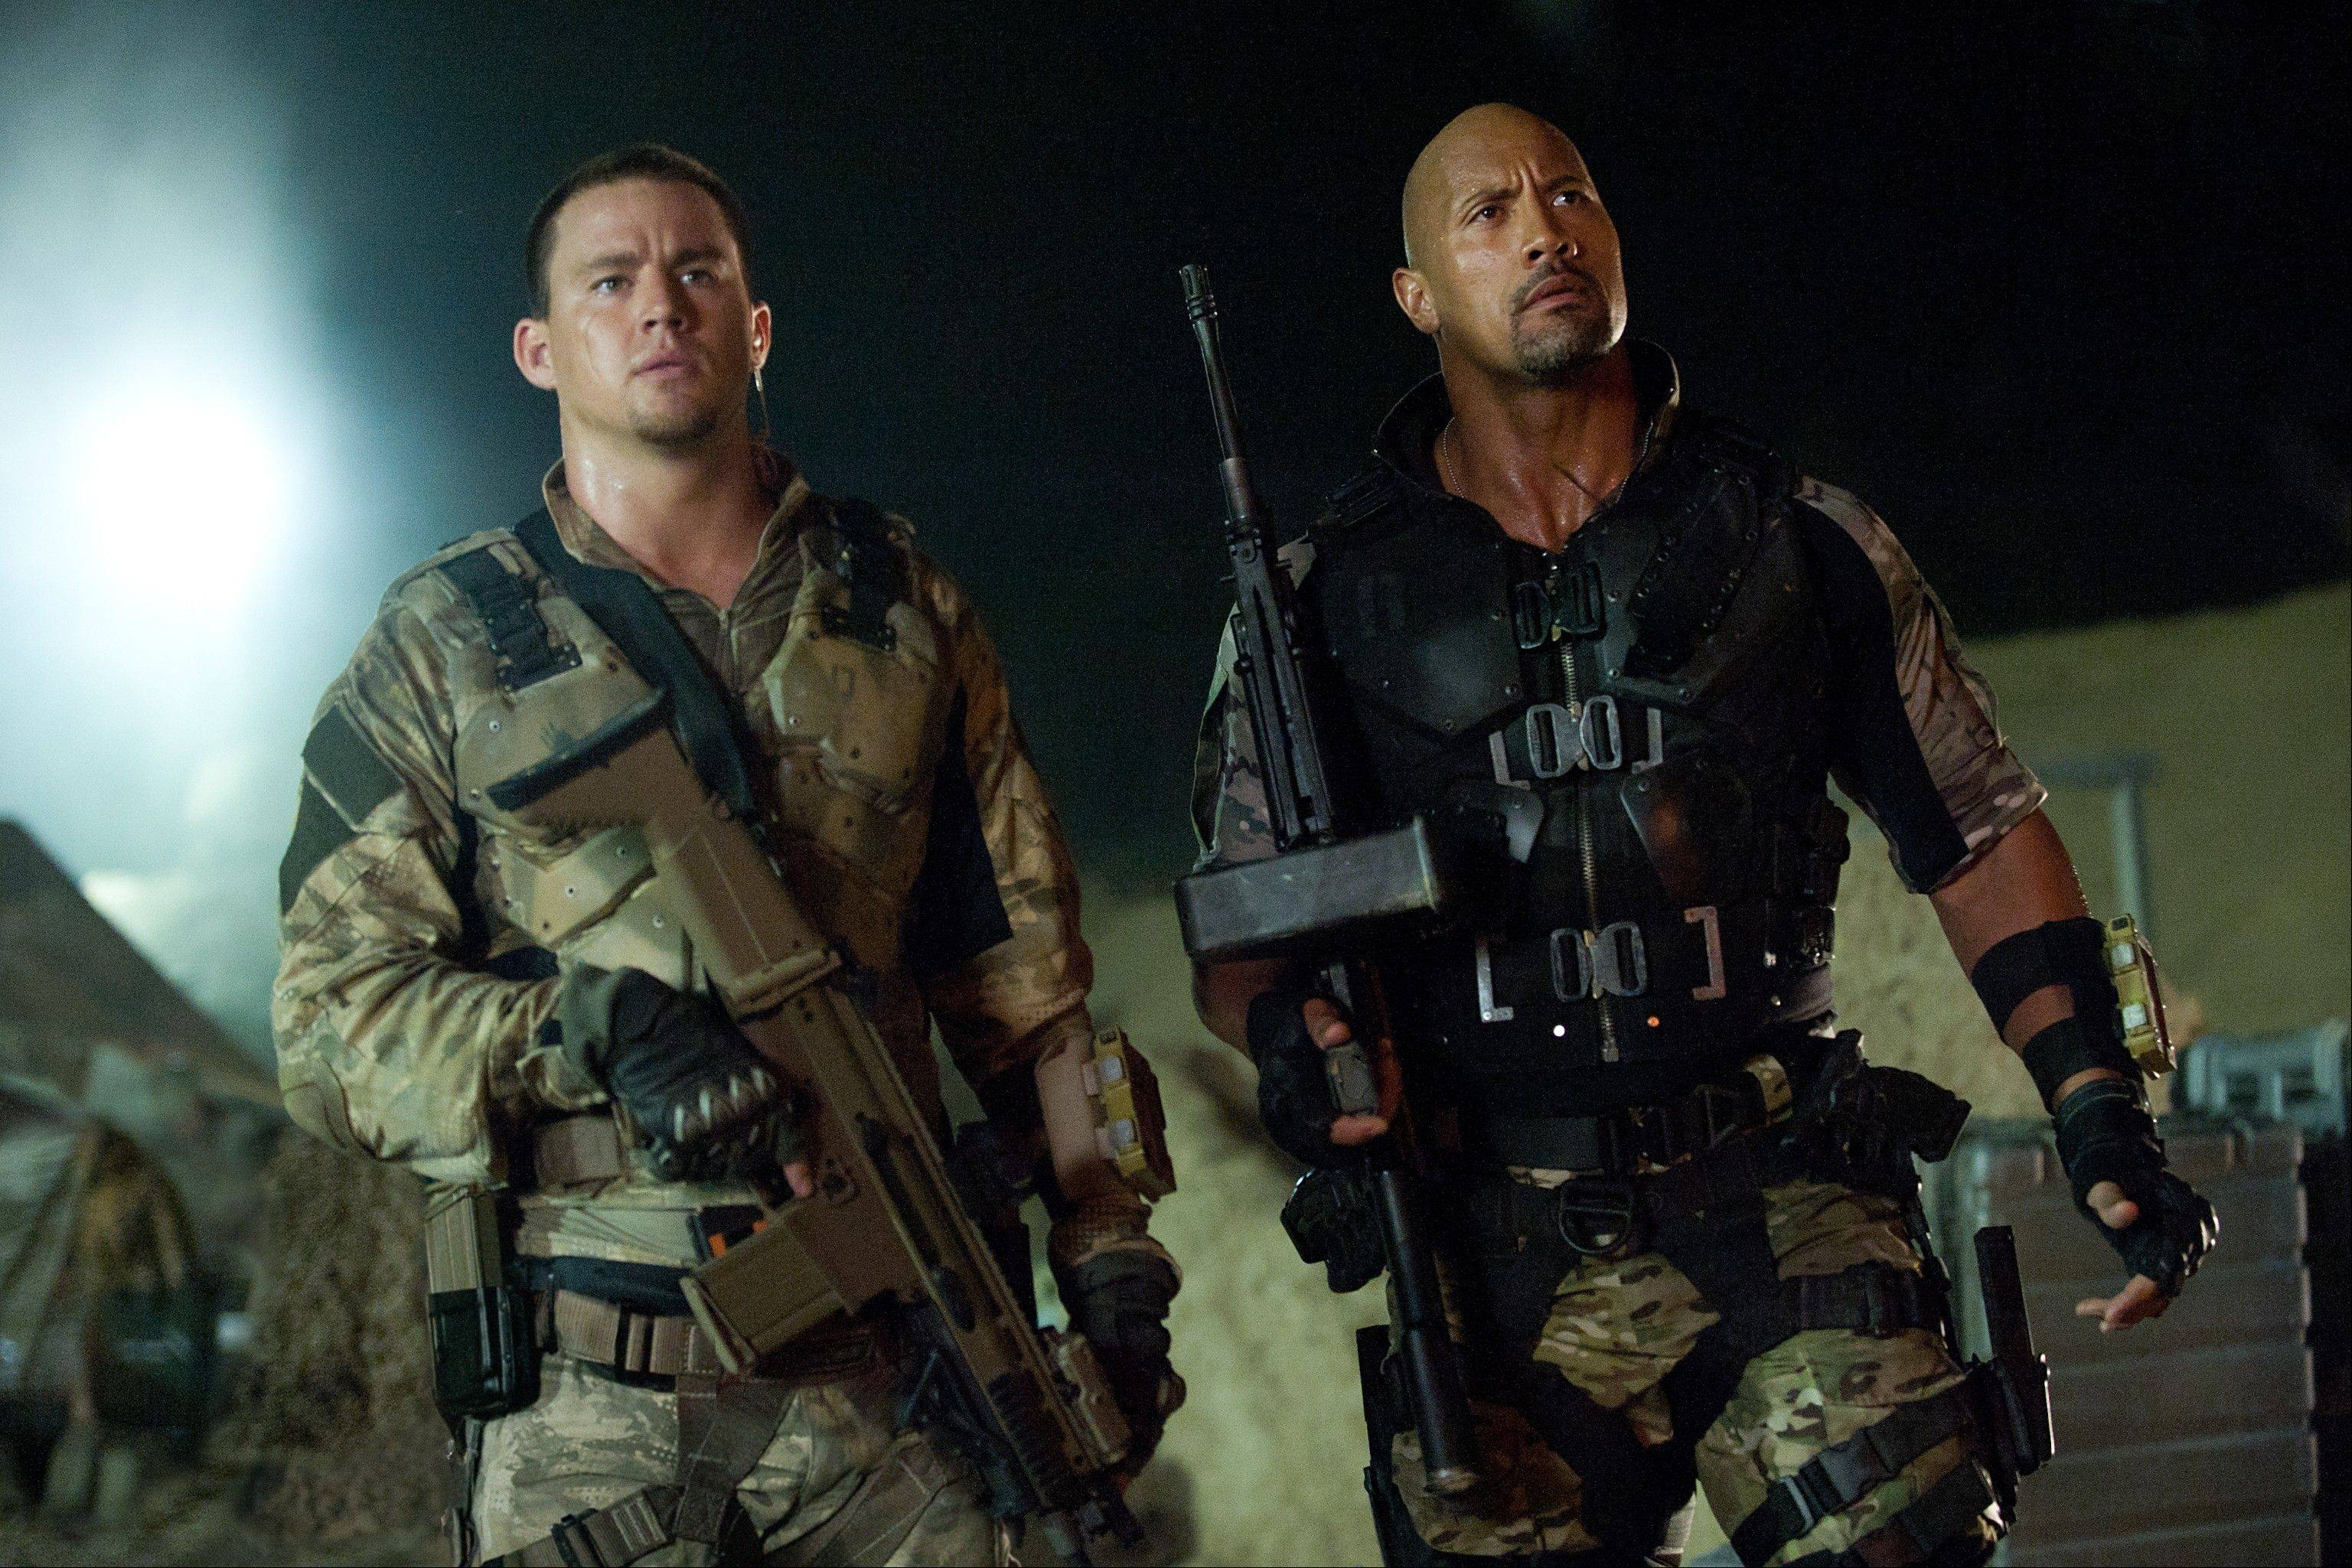 This film image released by Paramount Pictures shows Channing Tatum, left, and Dwayne Johnson in a scene from �G.I. Joe: Retaliation,� which debuted at No. 1 at the box office with a $41 million haul.